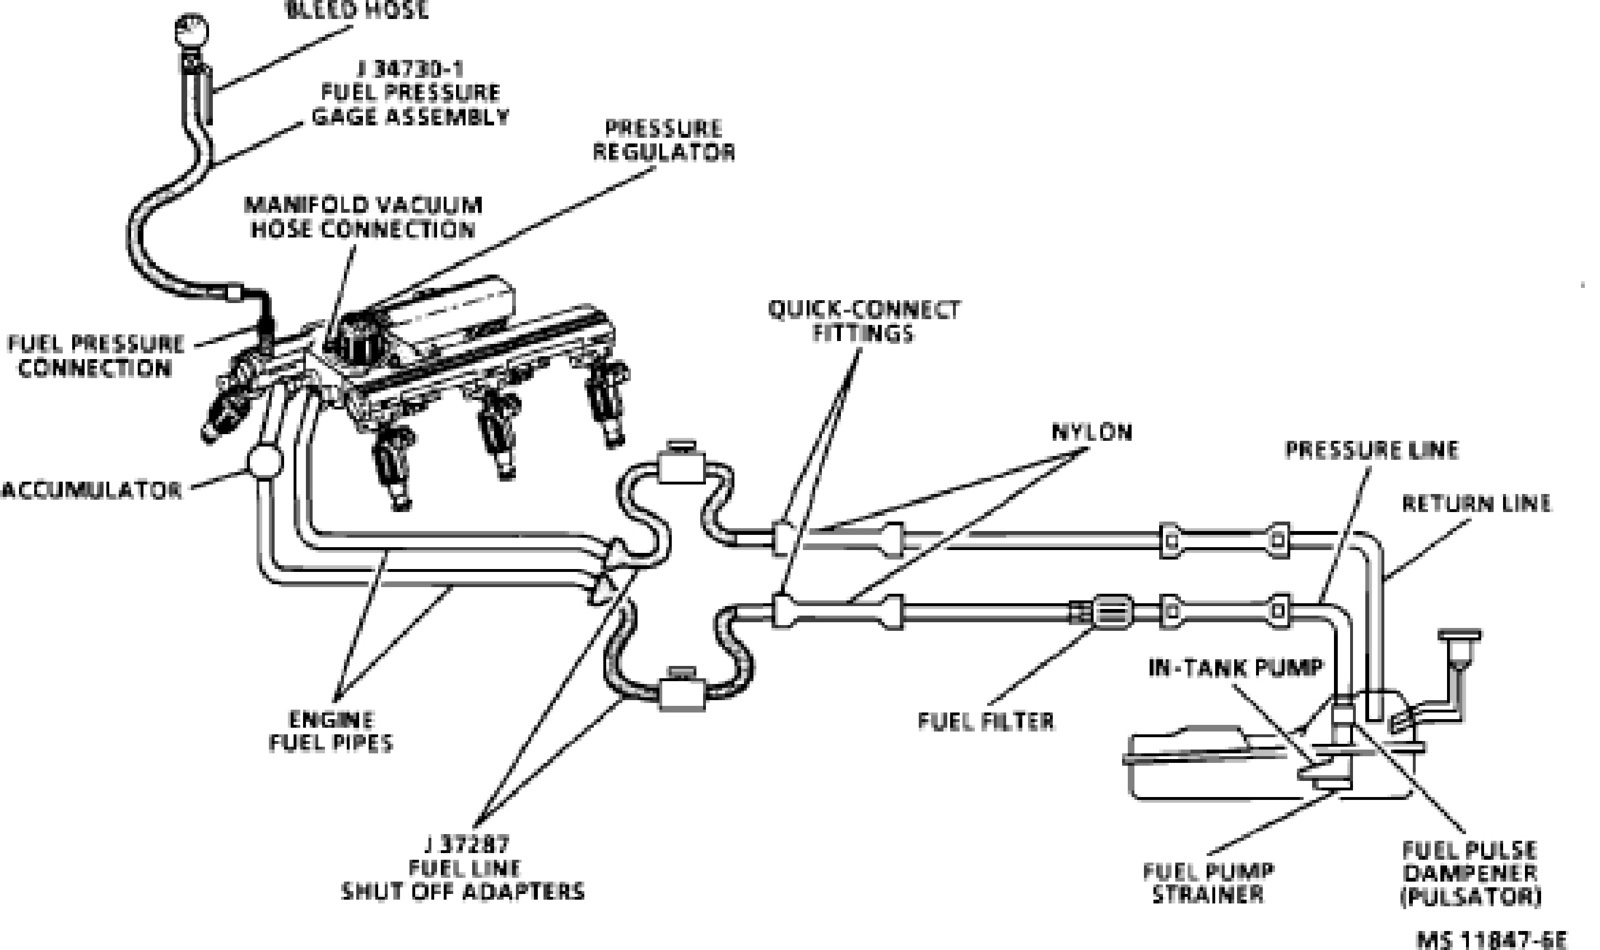 1996 Buick Regal Engine Diagram on 1996 Chevy Corsica 4 Door